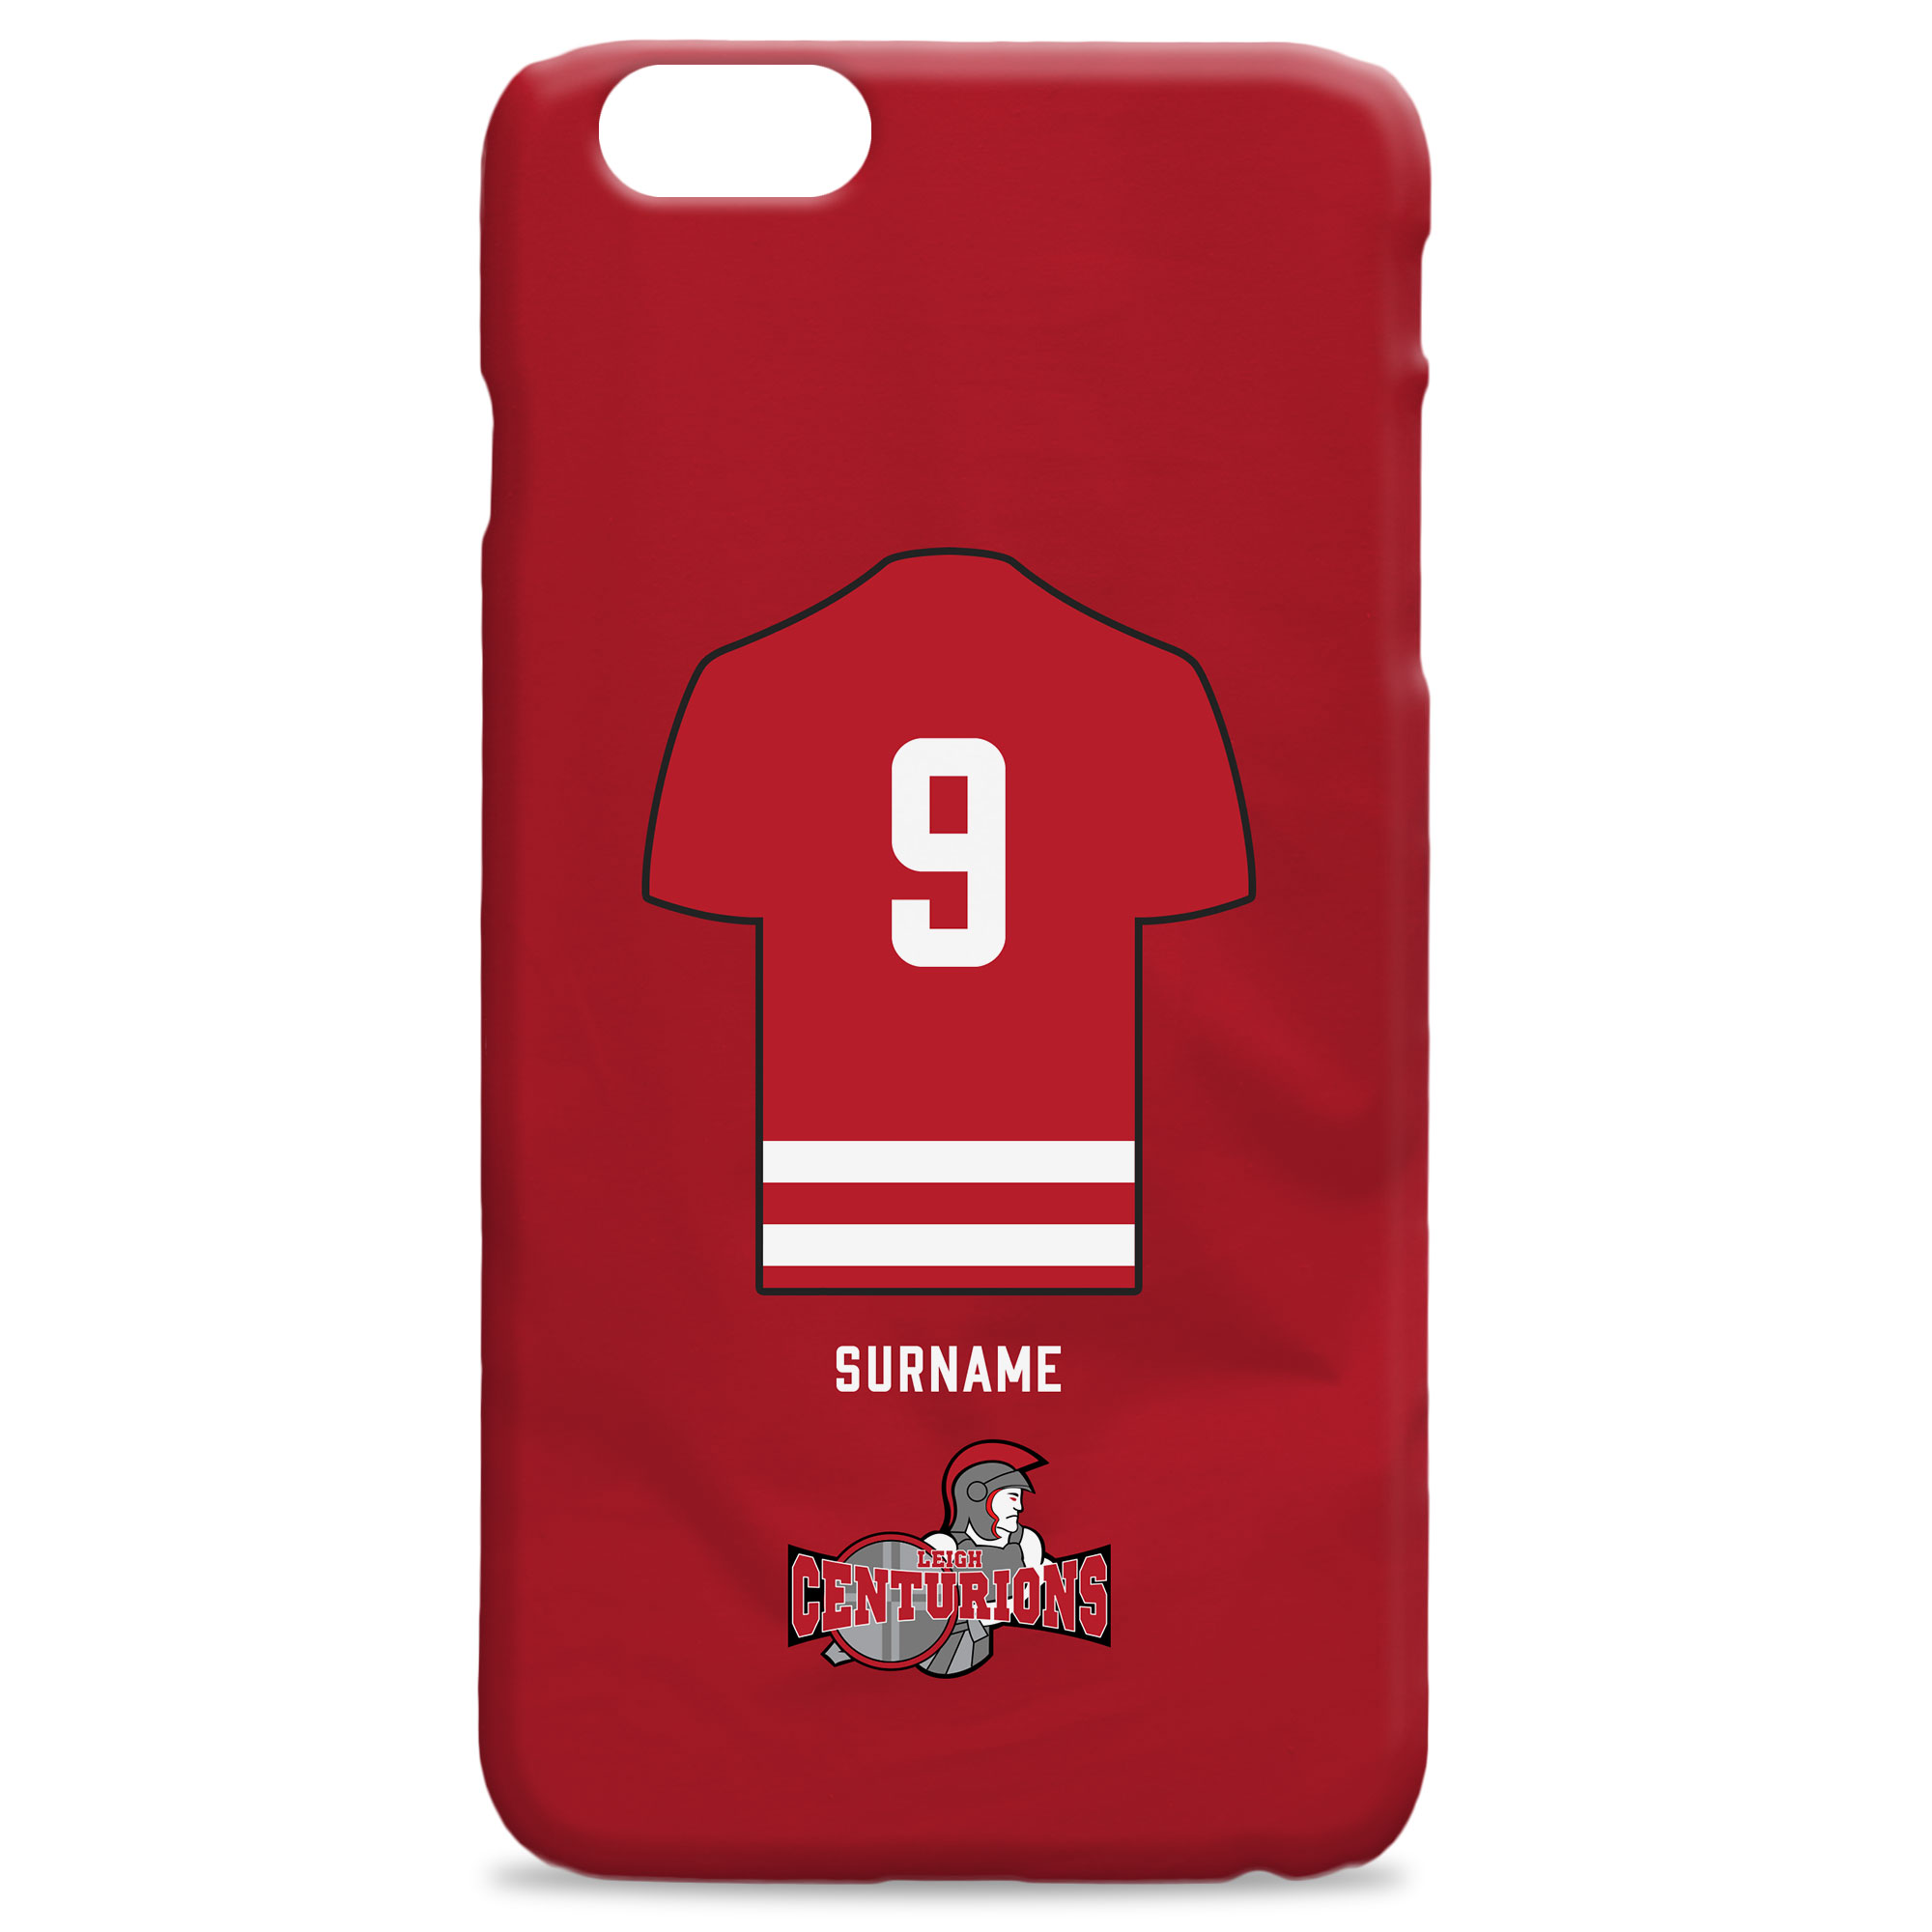 Leigh Centurions Shirt Hard Back Phone Case